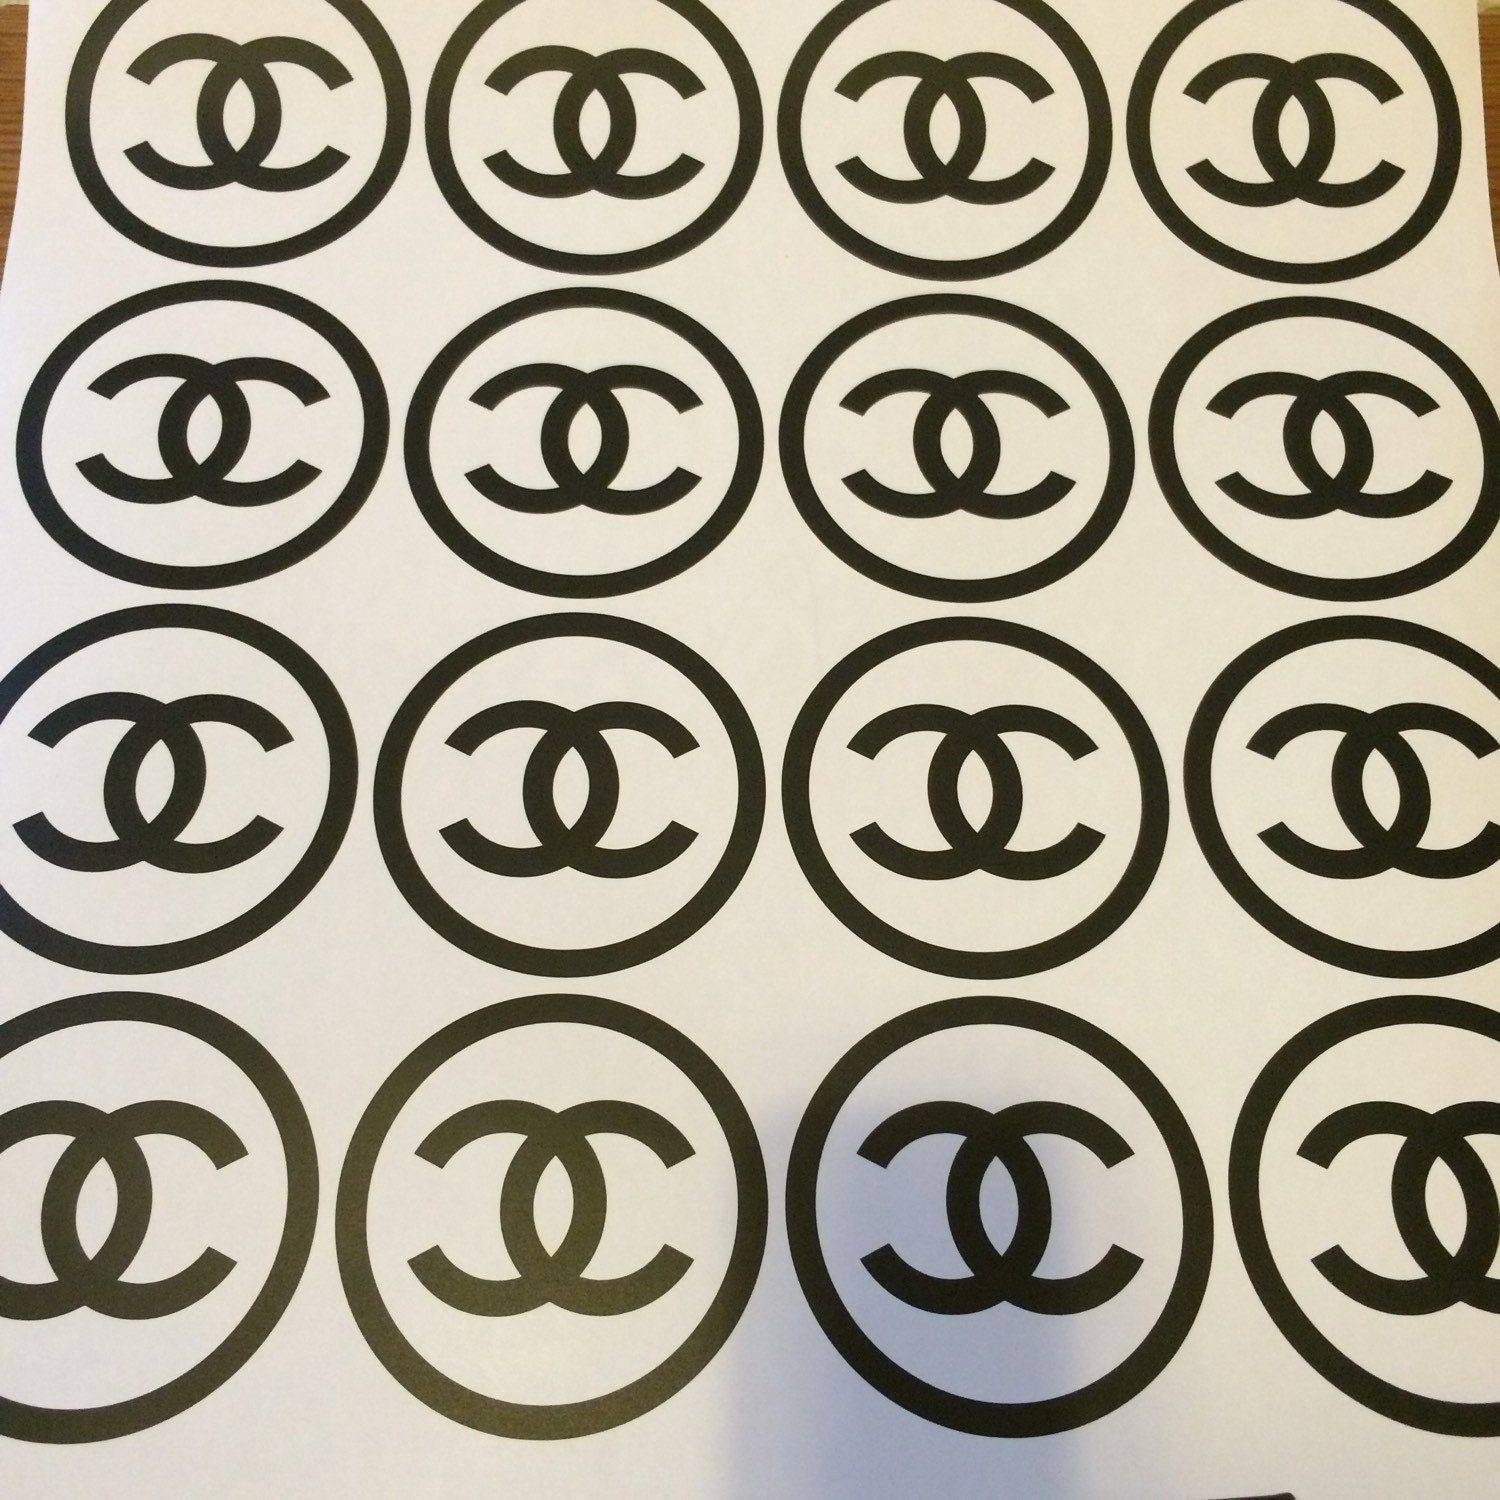 Coco Chanel Logo Stickers – (View 19 of 30)